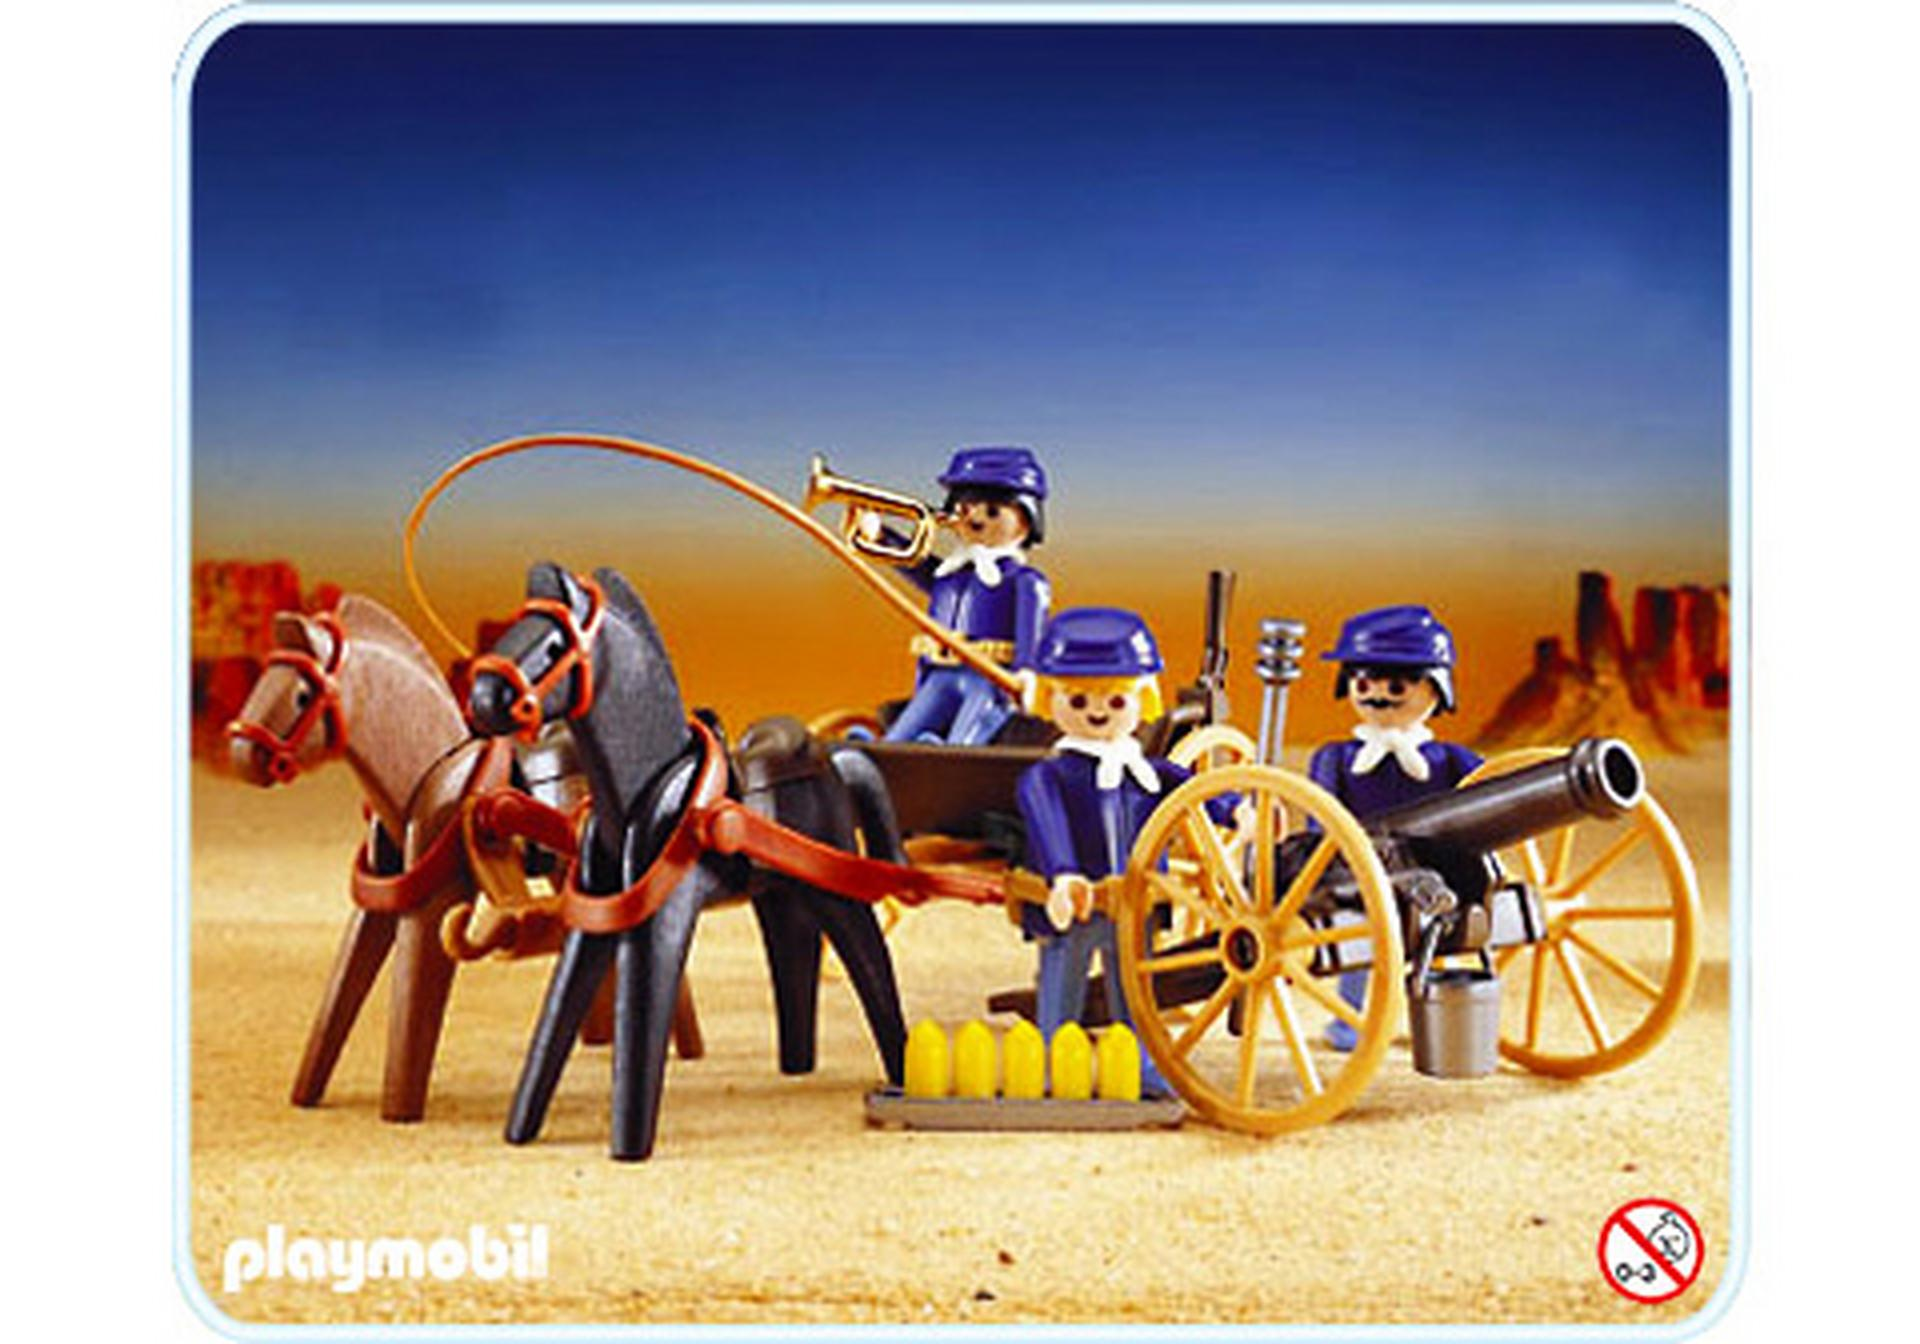 Soldats us attelage canon 3729 a playmobil france for Playmobil buanderie